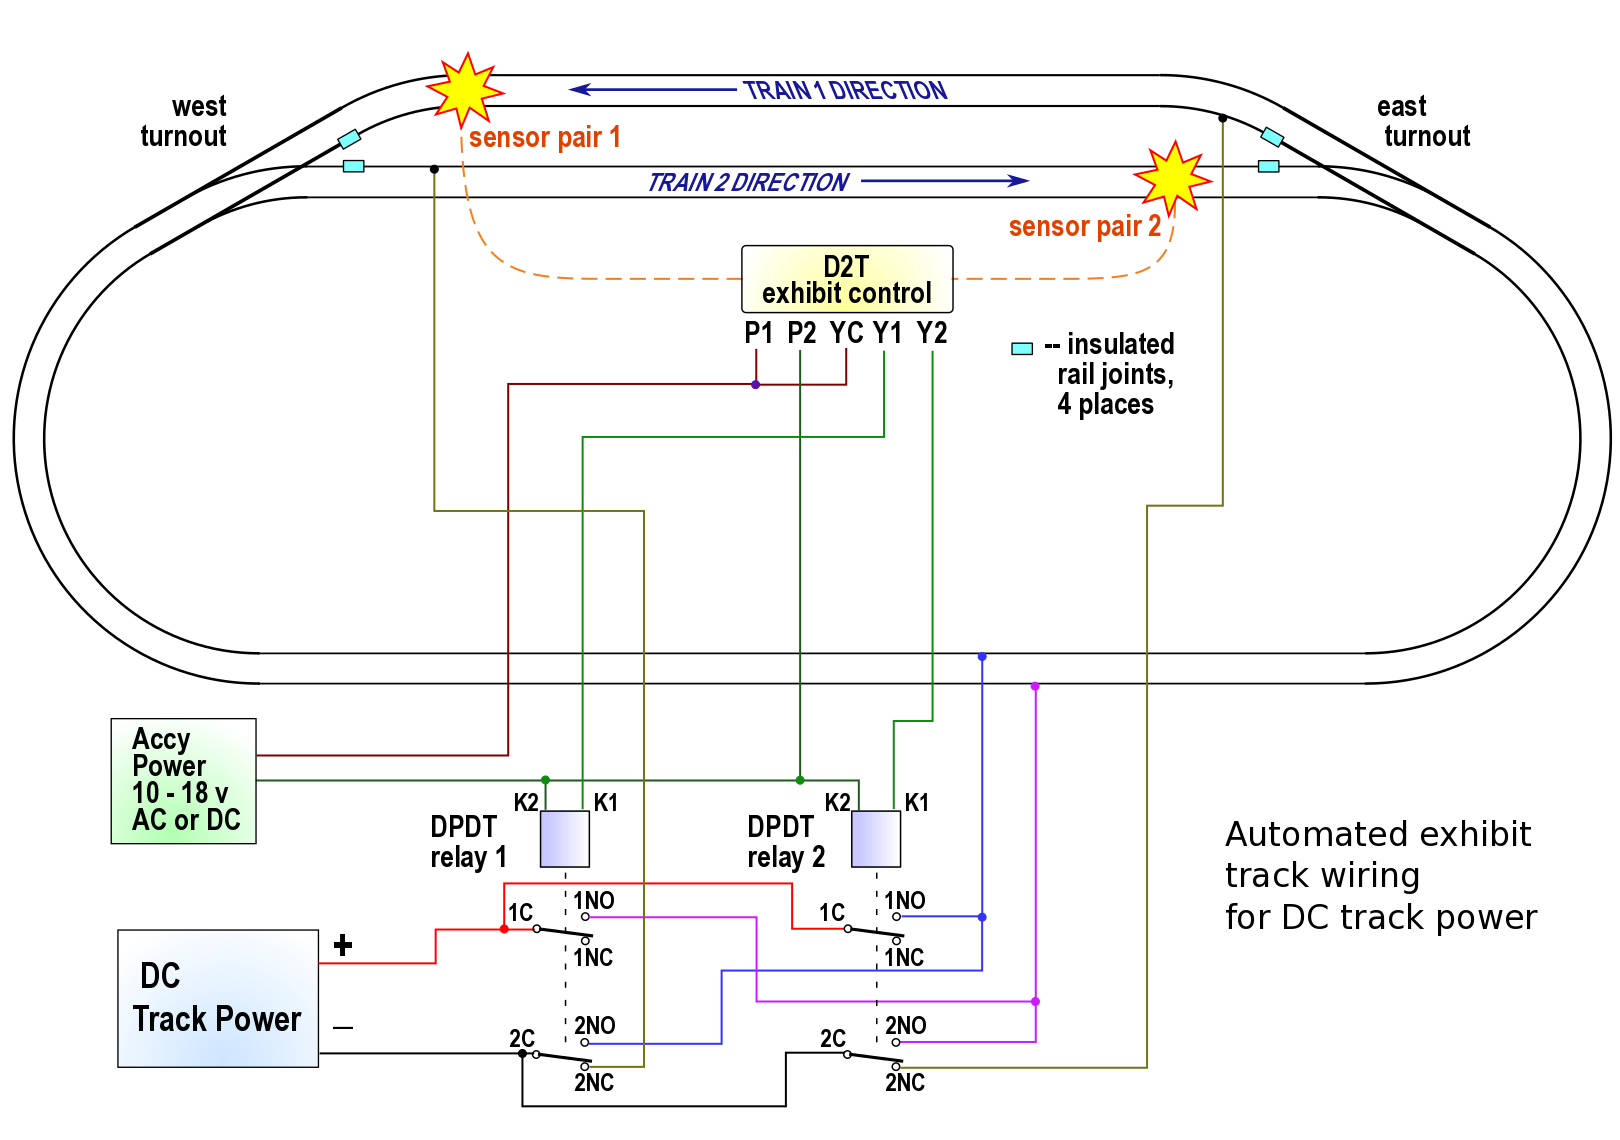 Loop Wiring Diagram For Dc Hobbies Pinterest Model Monitor Power Control